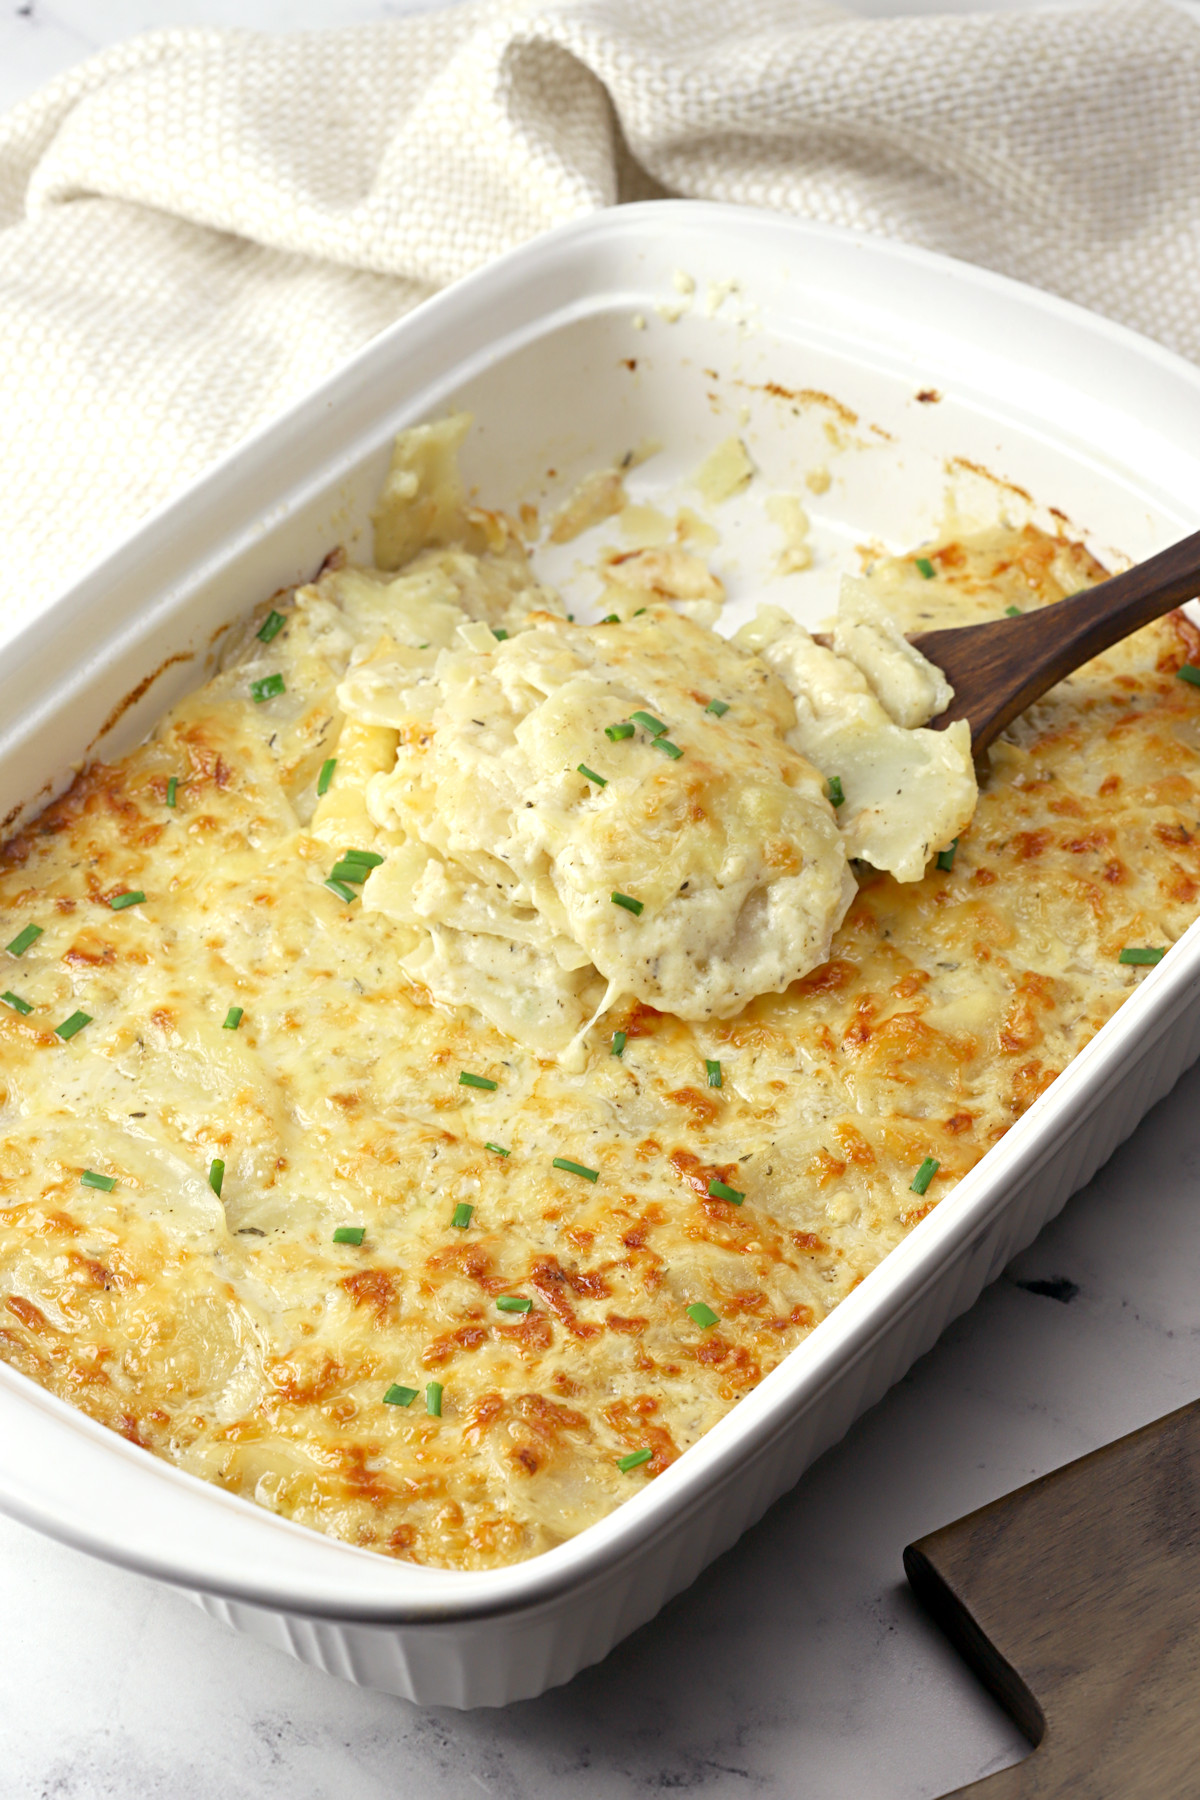 A white casserole dish filled with baked potatoes au gratin.